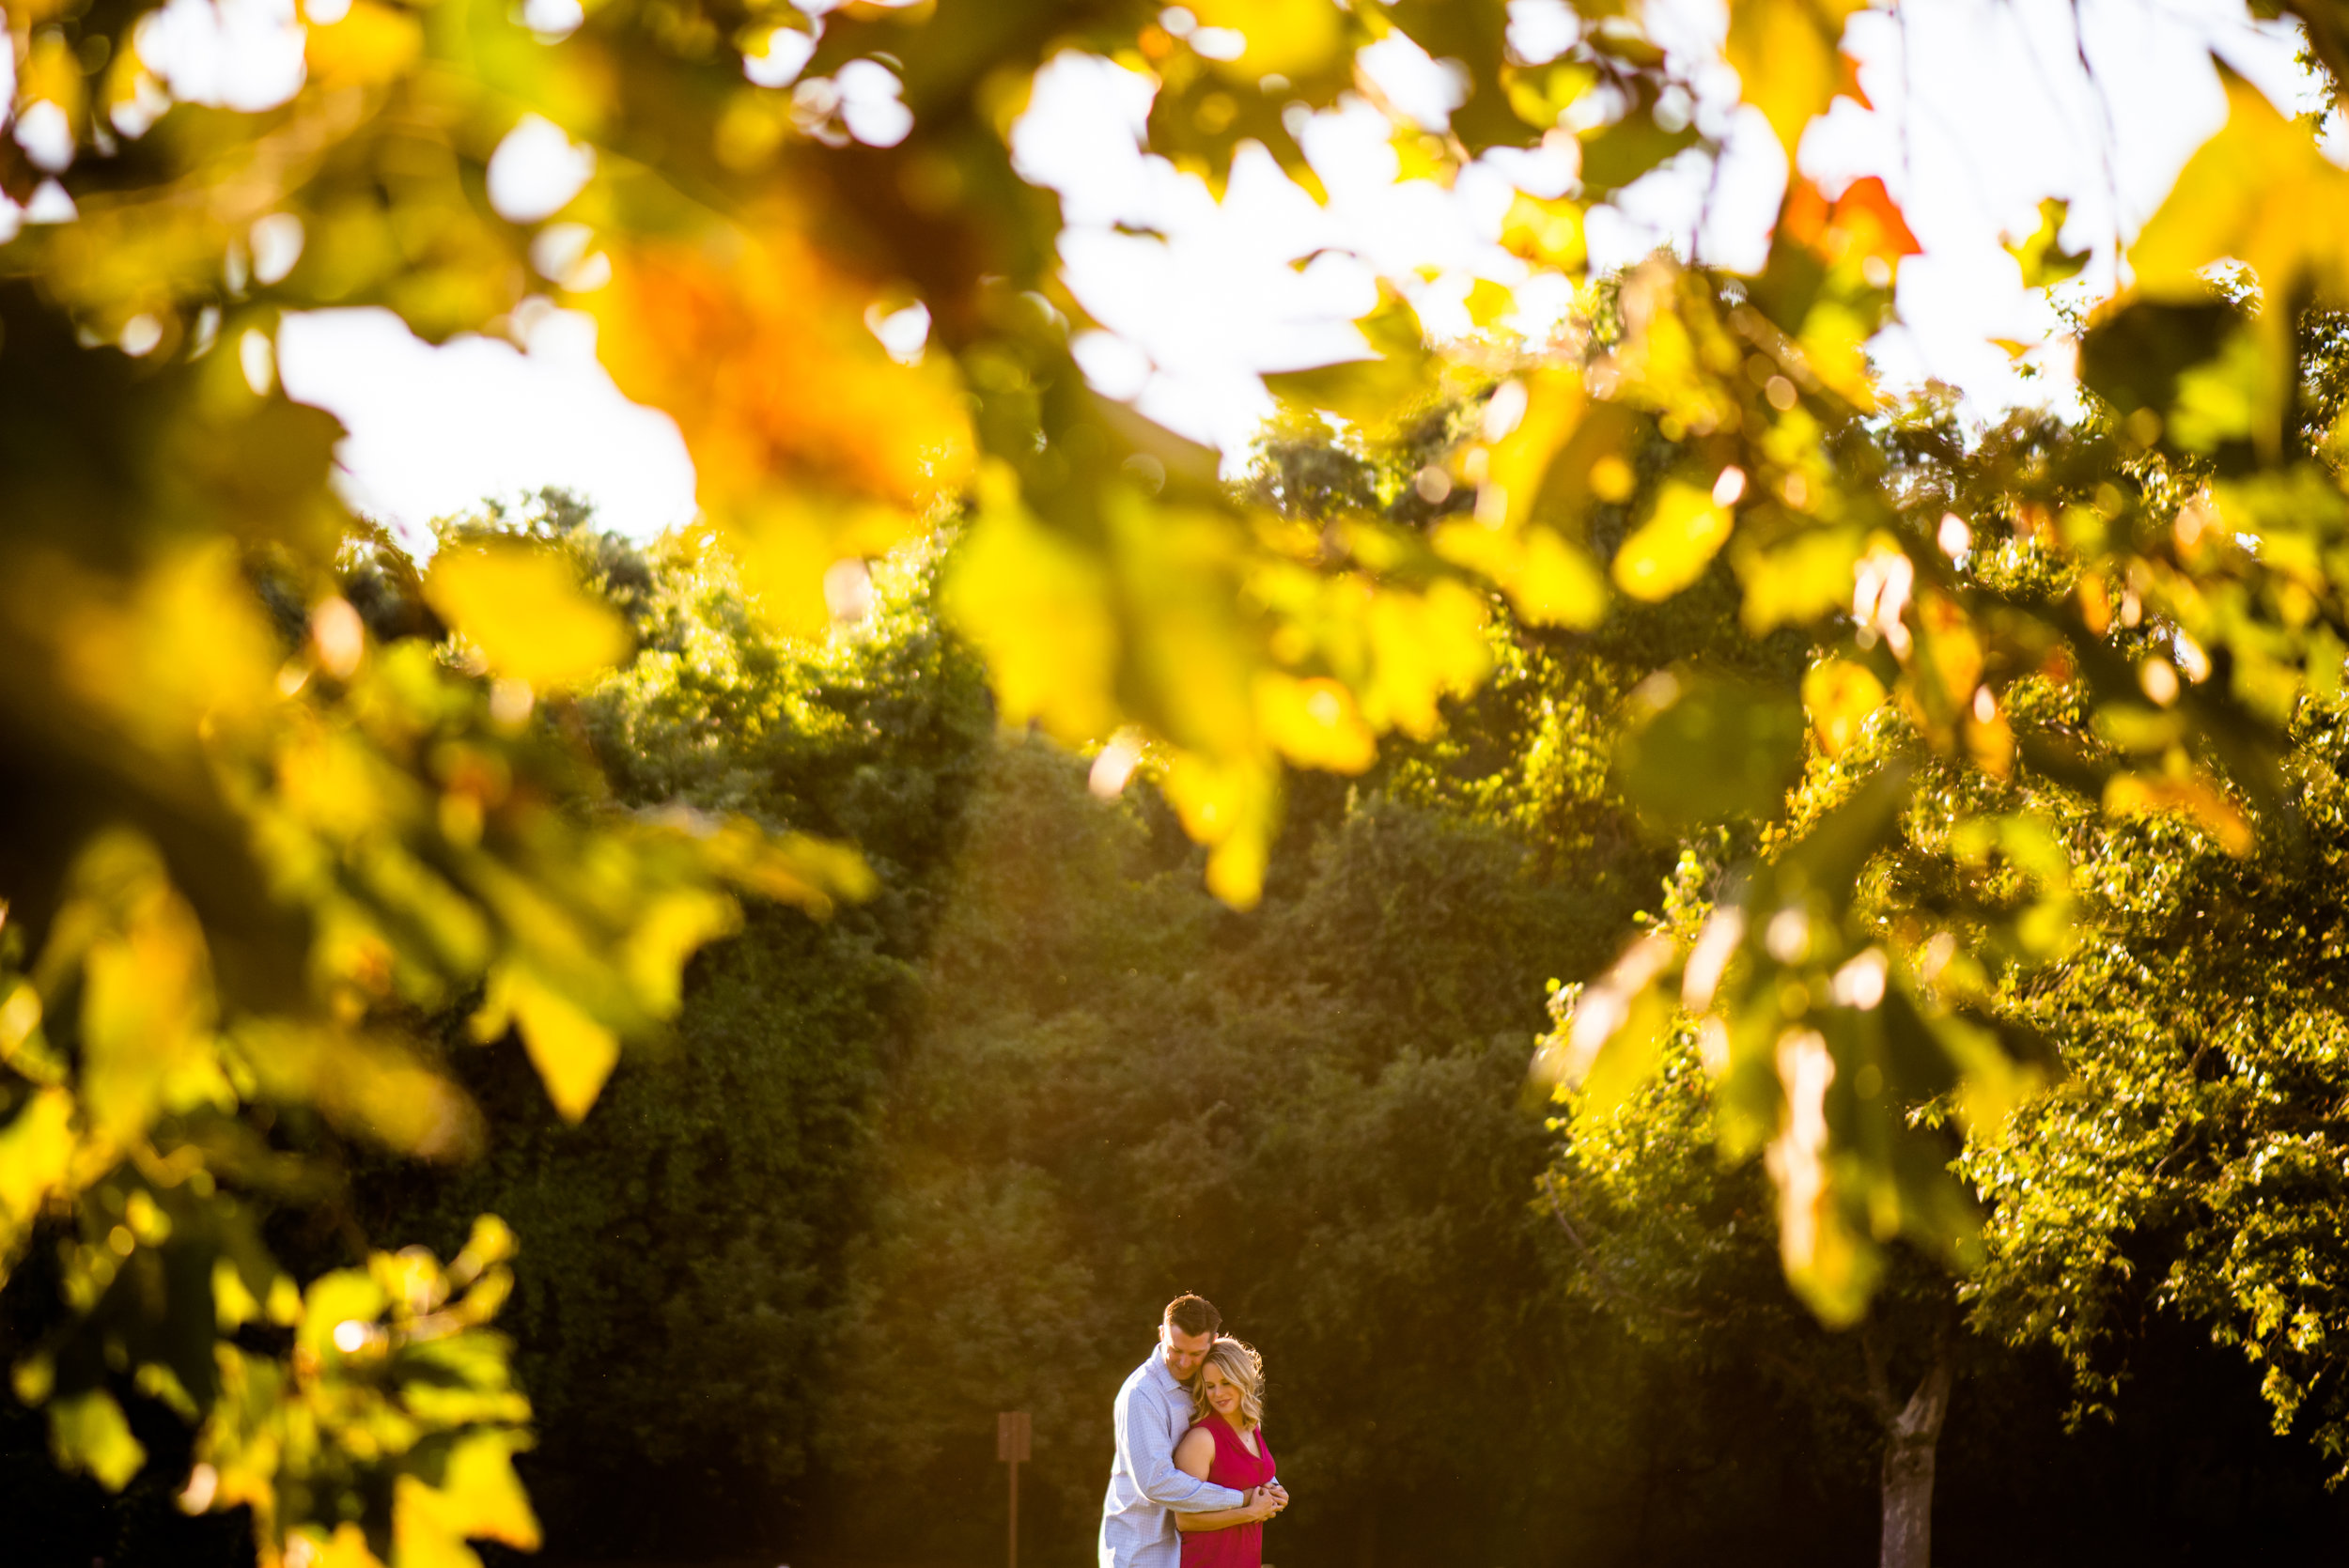 shannon-erich-006-sacramento-engagement-wedding-photographer-katherine-nicole-photography.JPG